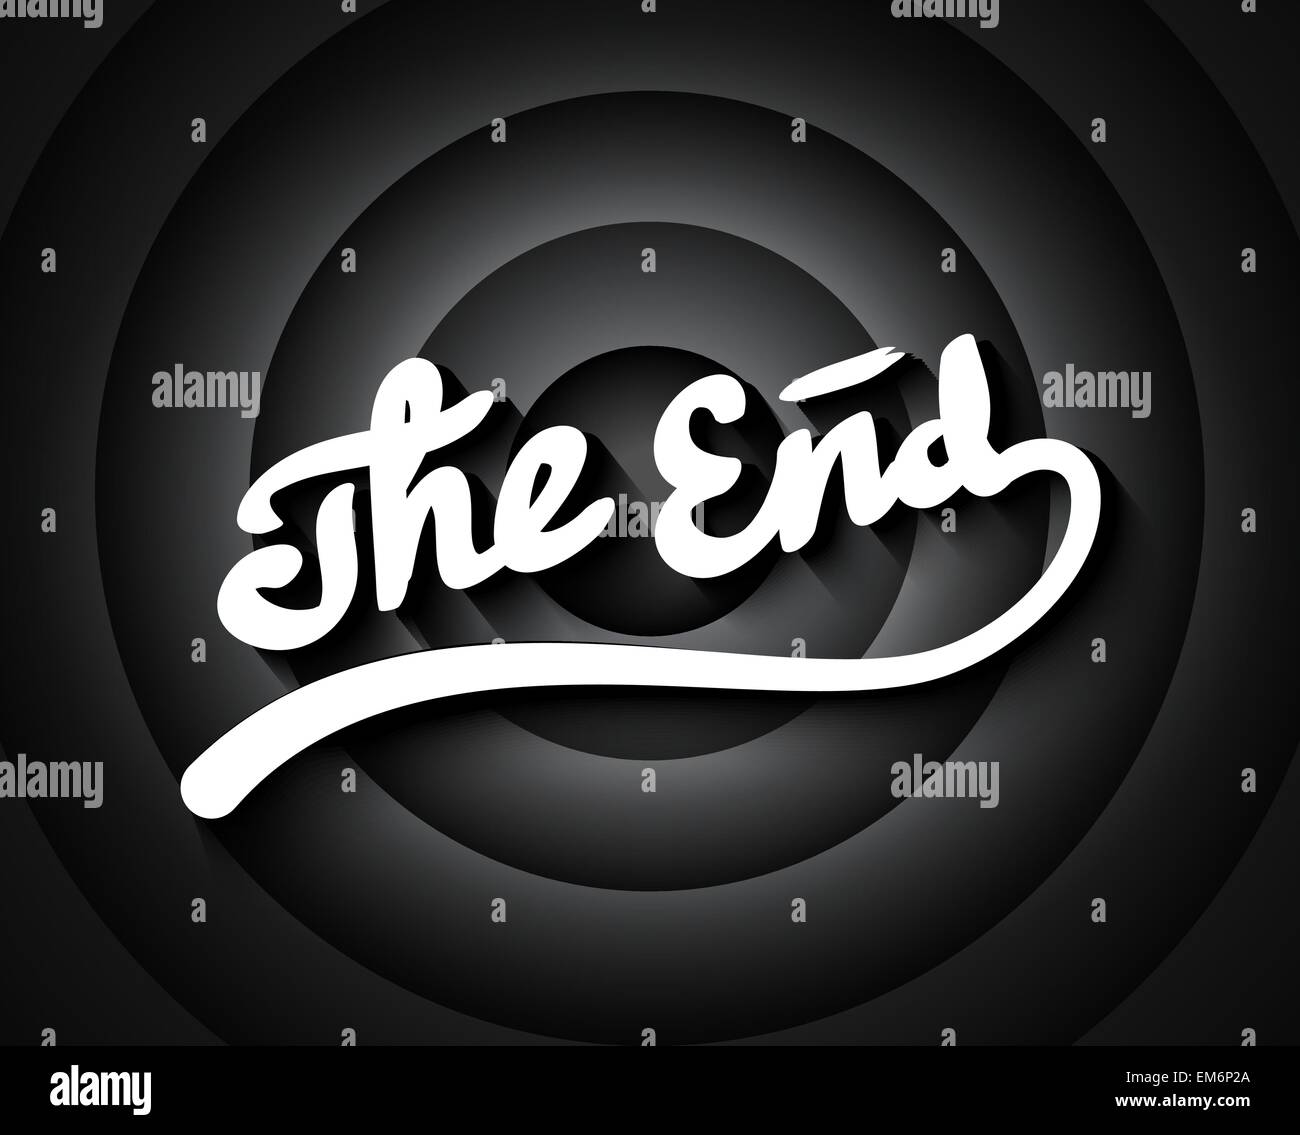 Old movie ending screen with black and white gradient circles background, stylized noir The End lettering - Stock Vector